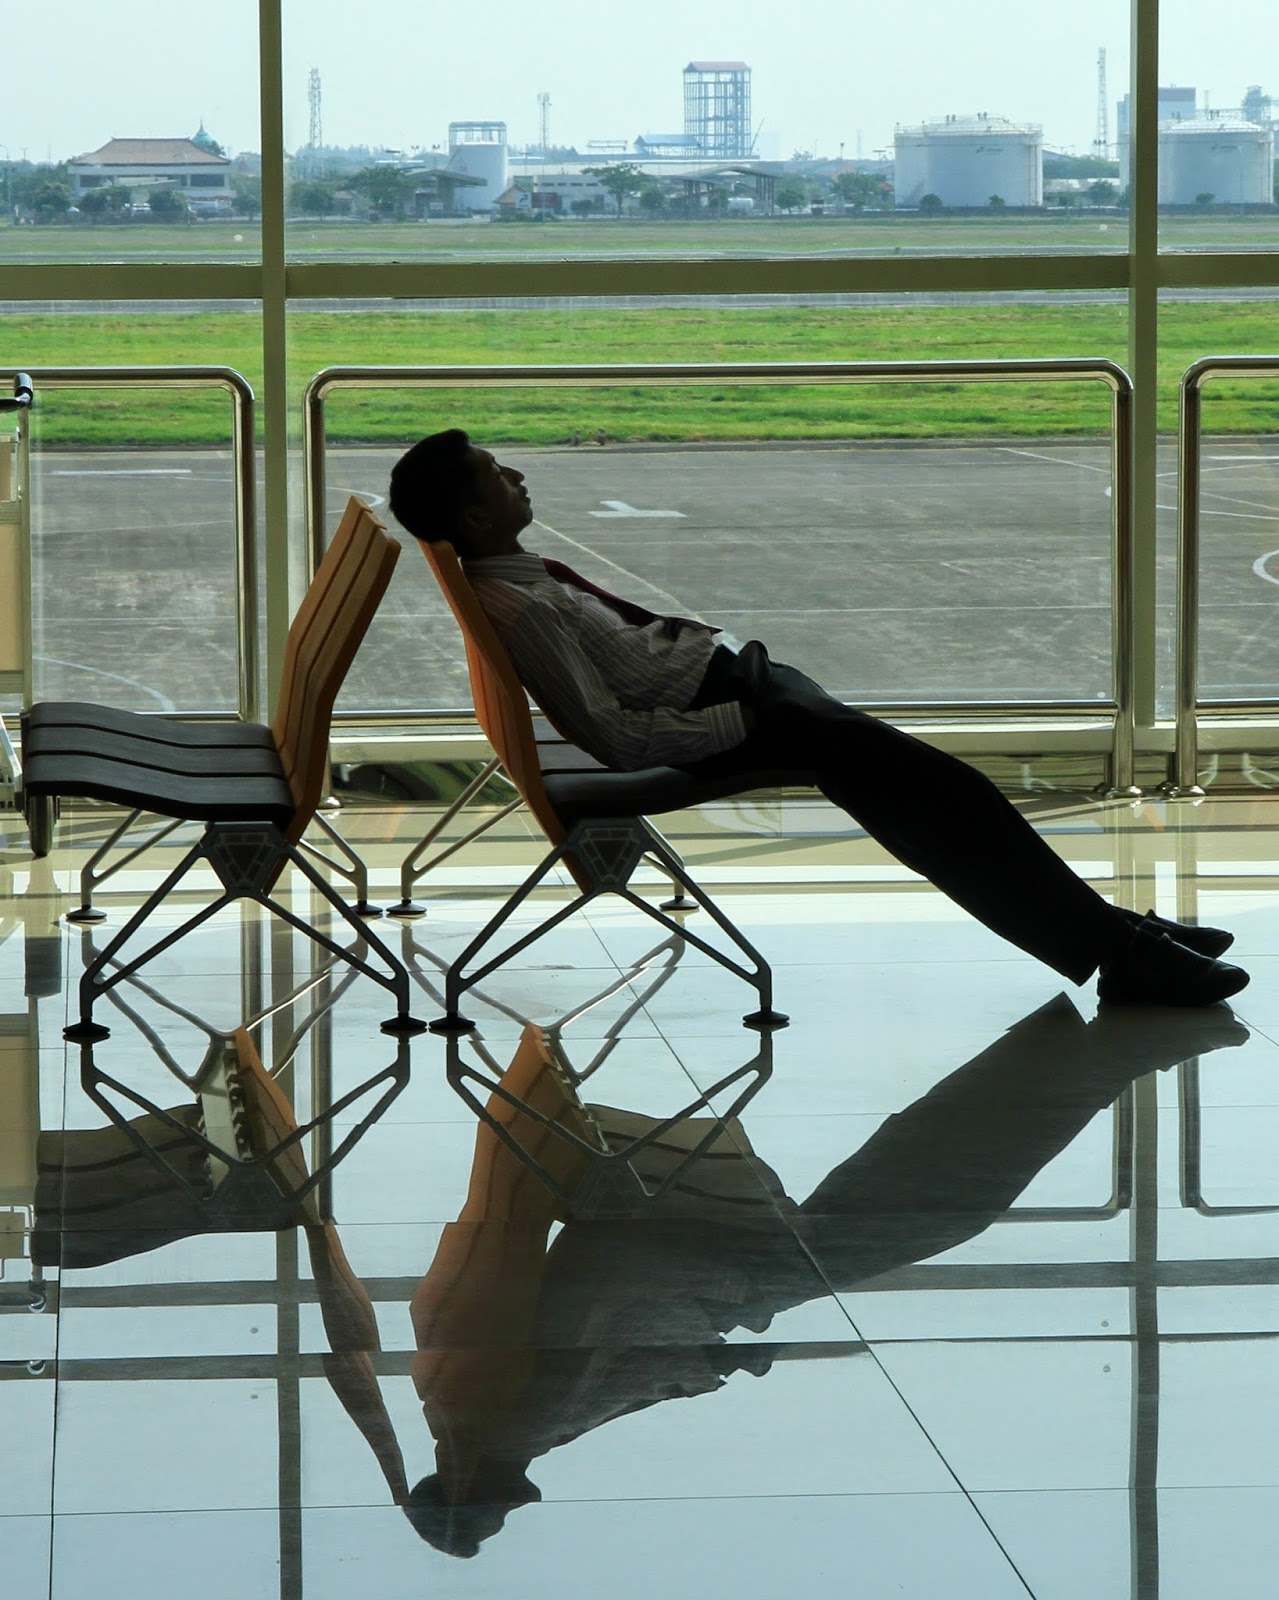 sleeping, airports, surabaya, indonesia,